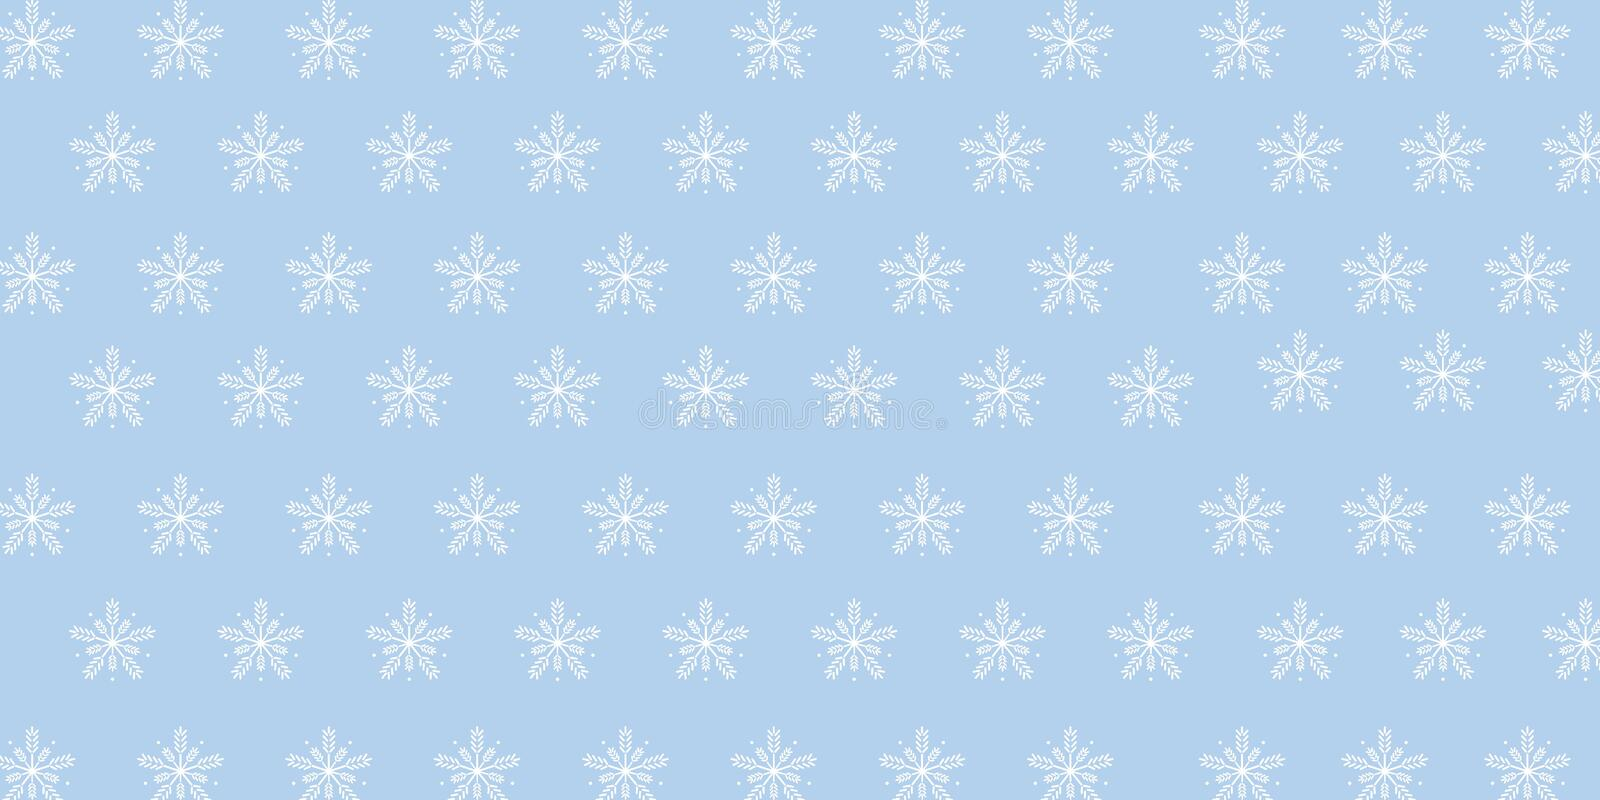 Ice Flakes Background Vector Illustration can use for Winter and Christmas Theme royalty free illustration